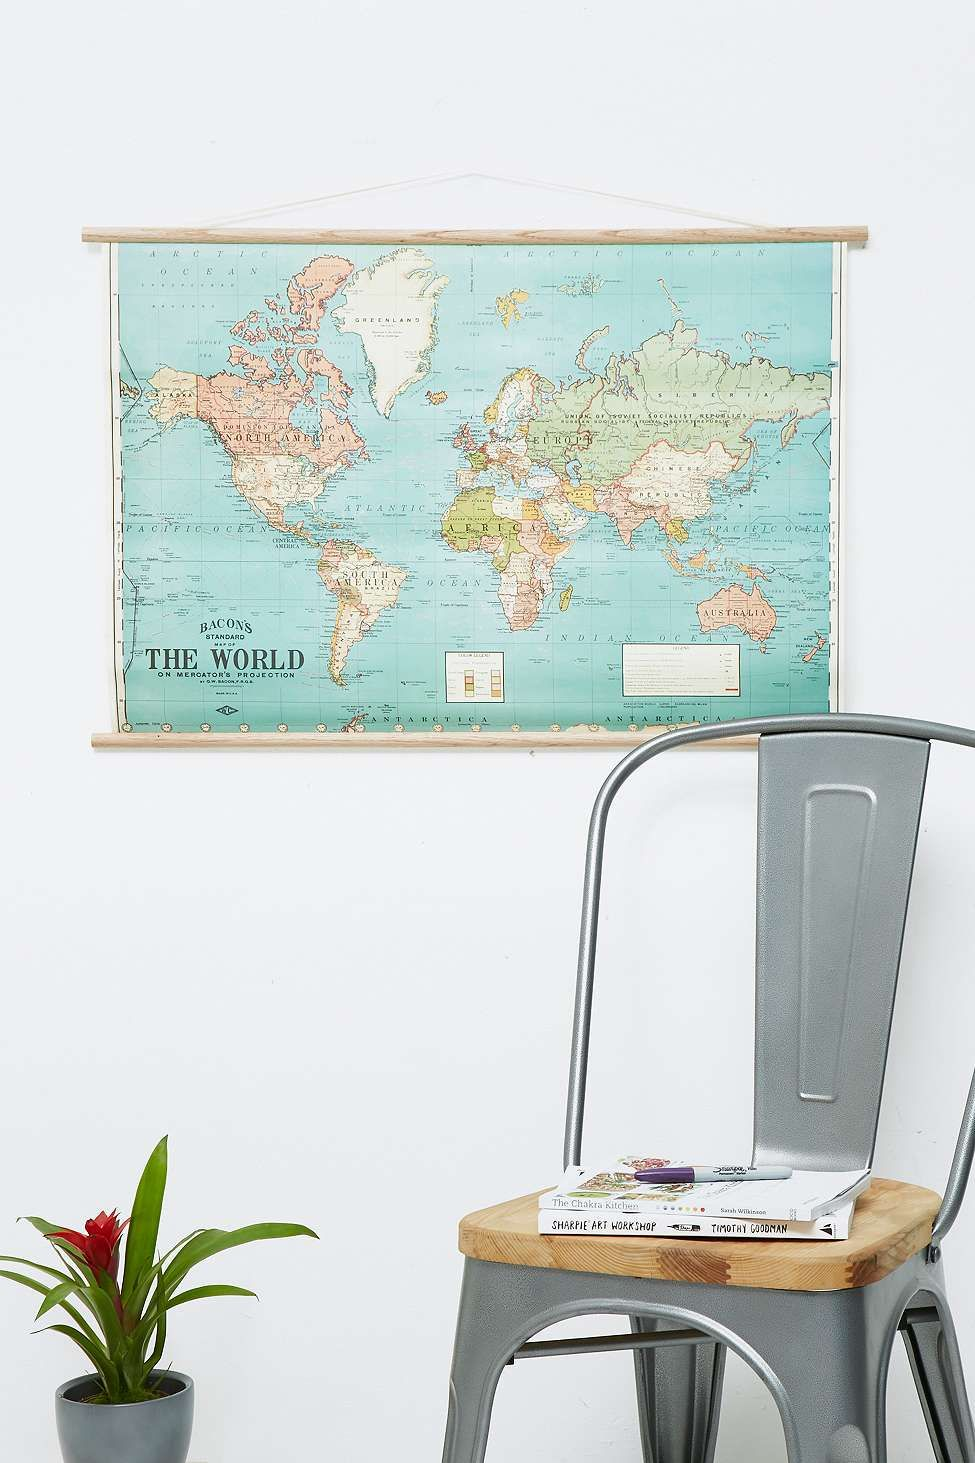 poster carte du monde d co vintage r tro pinterest carte du monde carte du monde vintage. Black Bedroom Furniture Sets. Home Design Ideas